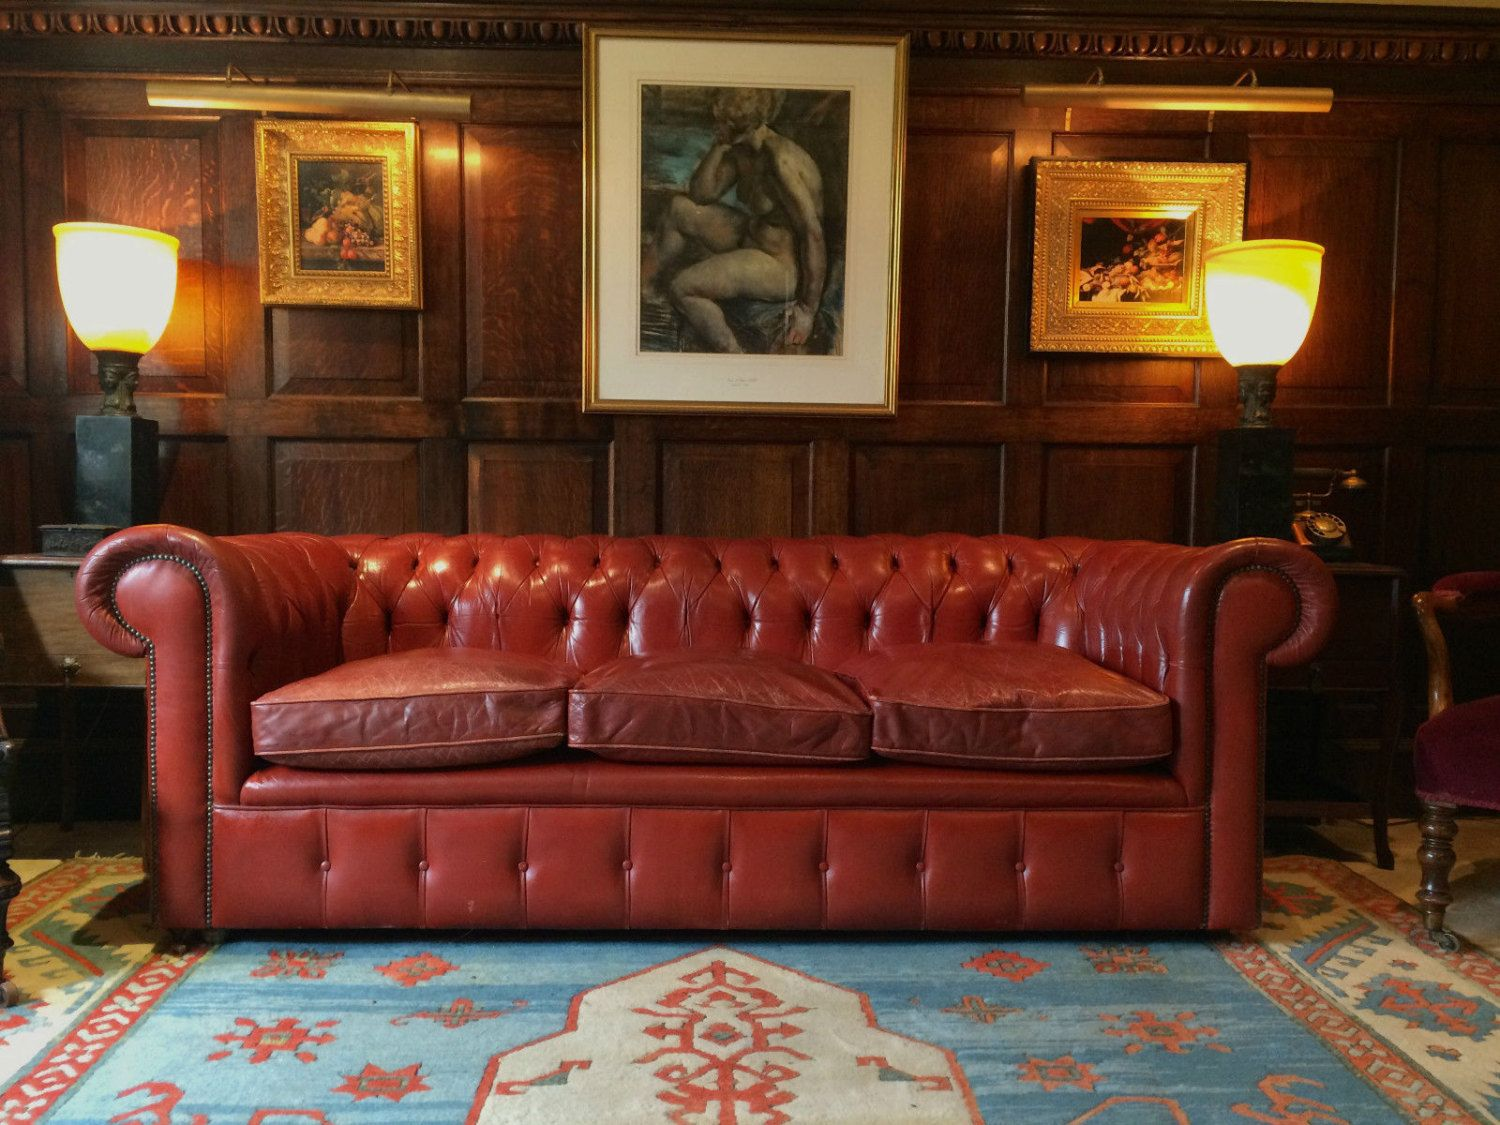 A Stunning Red Leather Sofa Gives Class Red Leather Sofa Red